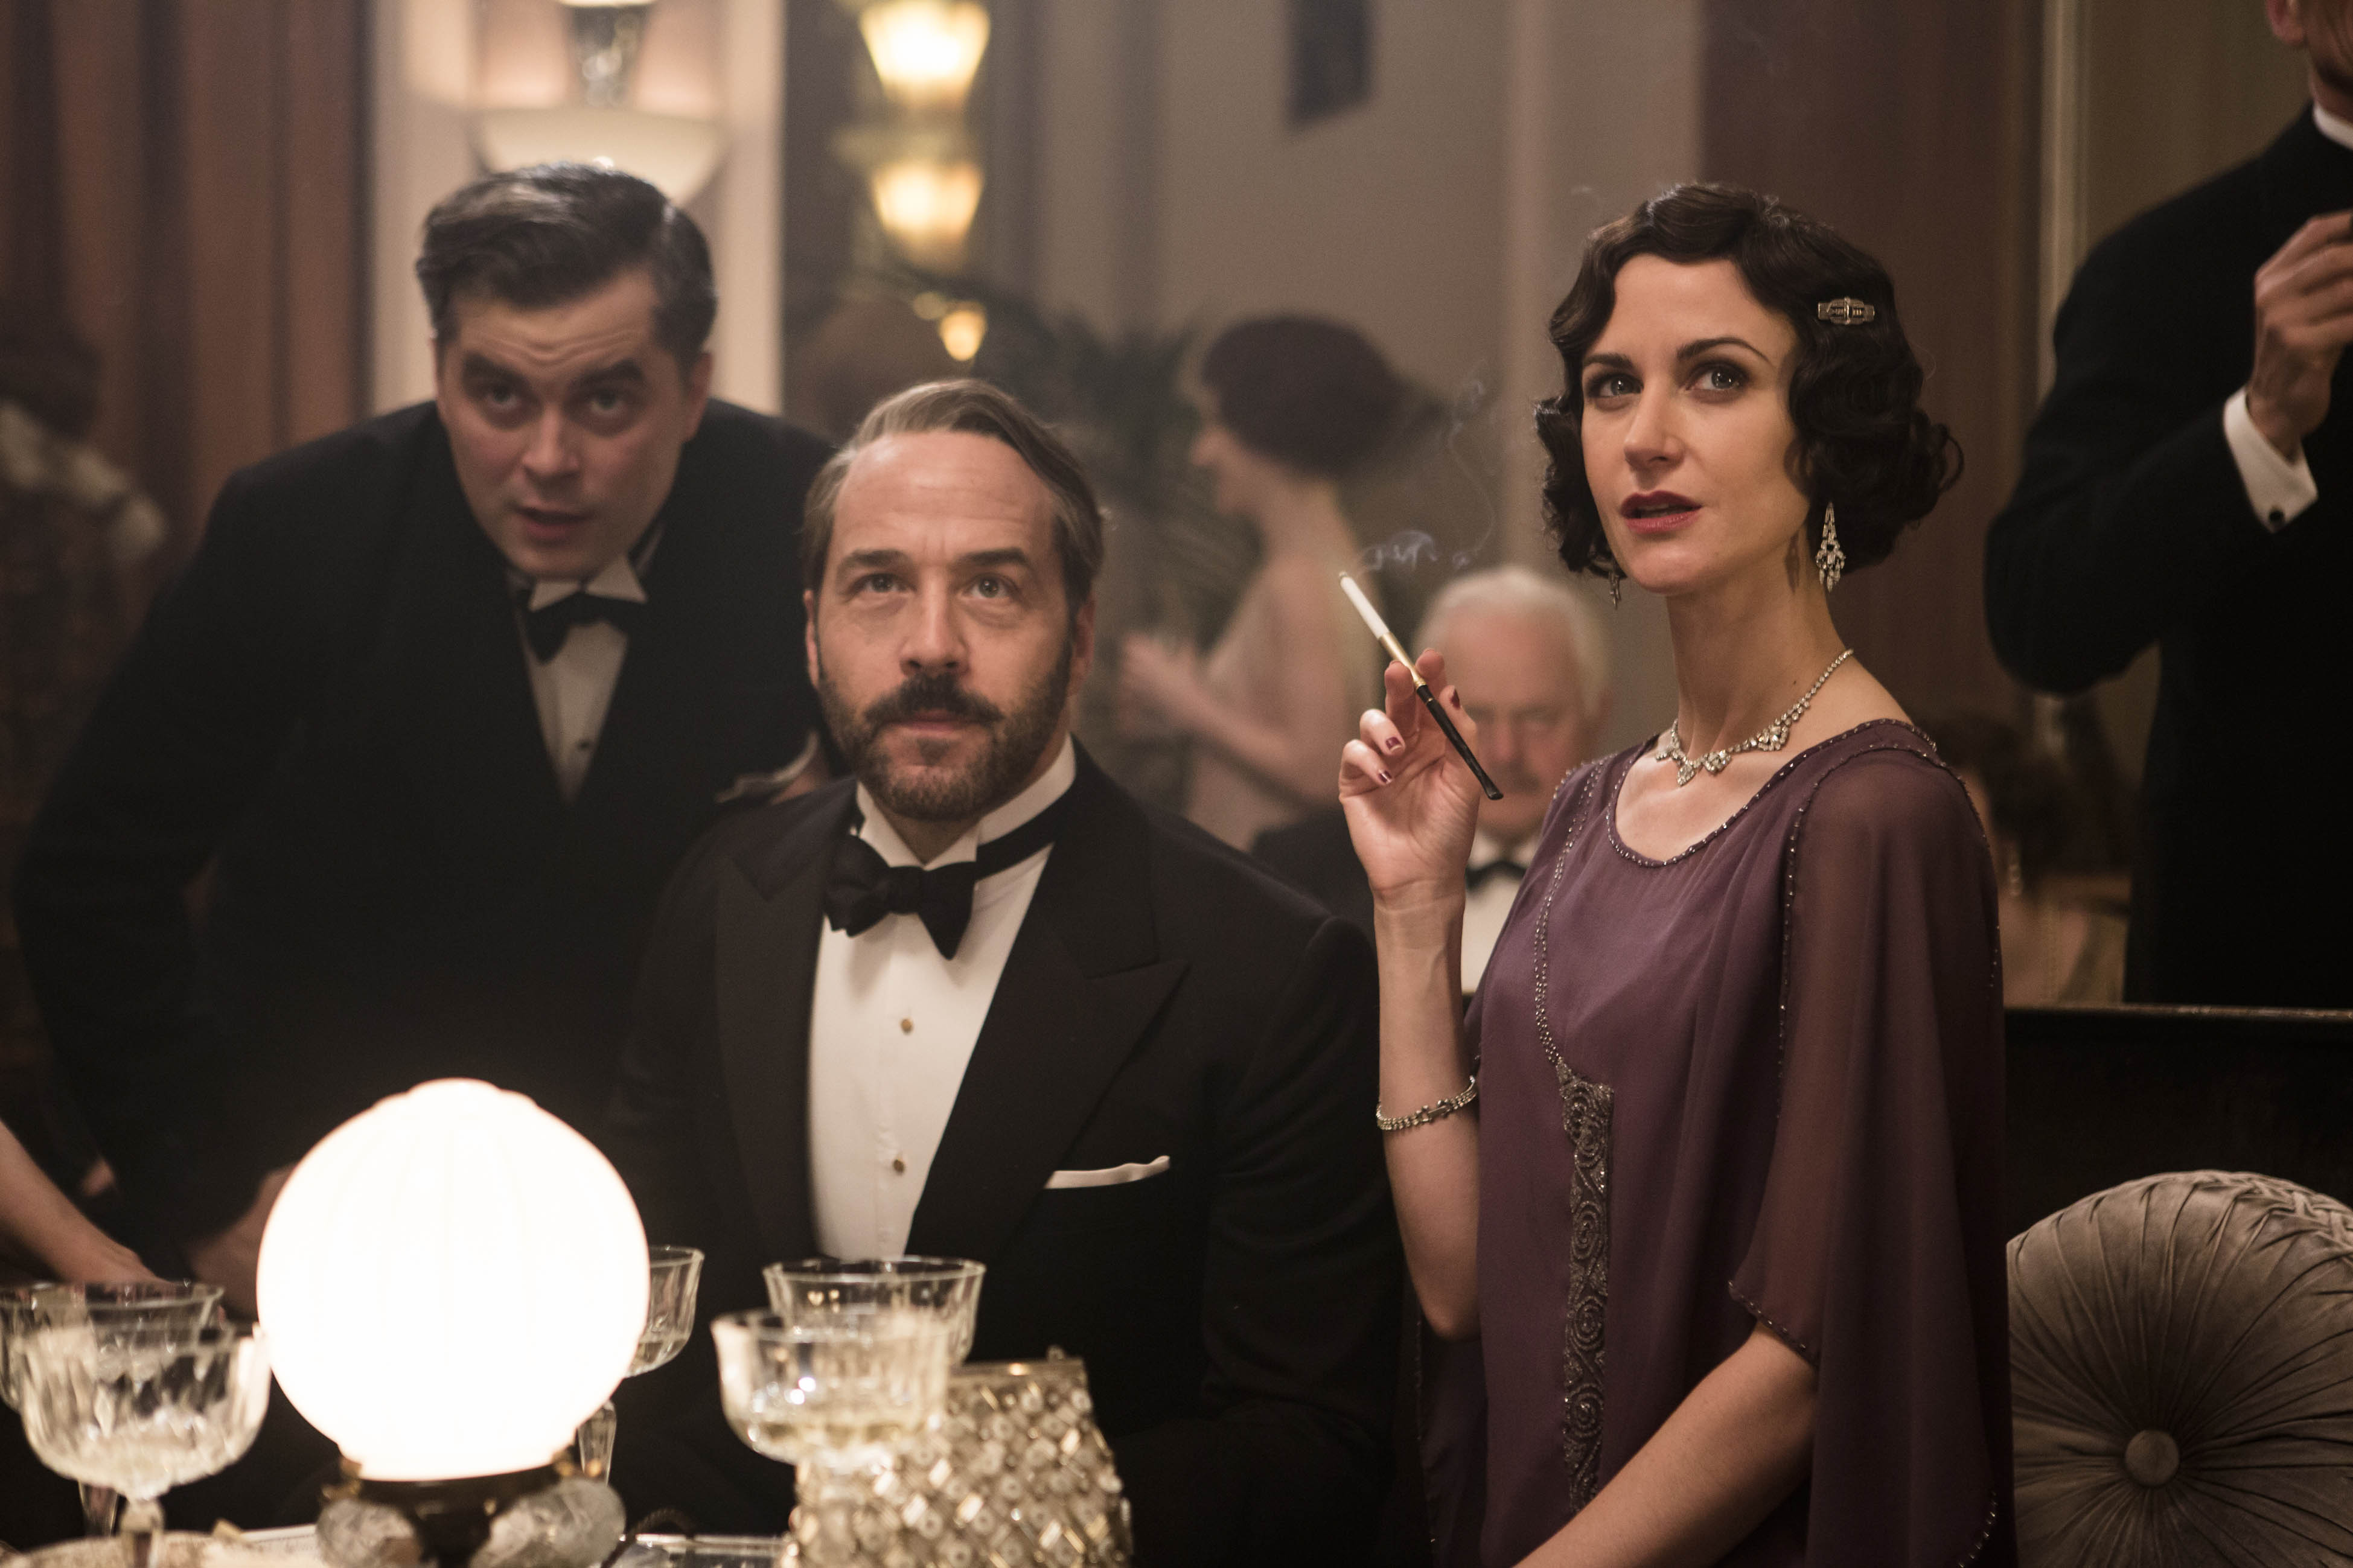 ITV STUDIOS PRESENTS MR SELFRIDGE SERIES 4 Pictured: TRYSTAN GRAVELLE as Victor, JEREMY PIVEN as Harry Selfridge and KATHERINE KELLY as Mae Rennard. This image is the copyright of ITV and is for one use only in relation to Mr Selfridge.